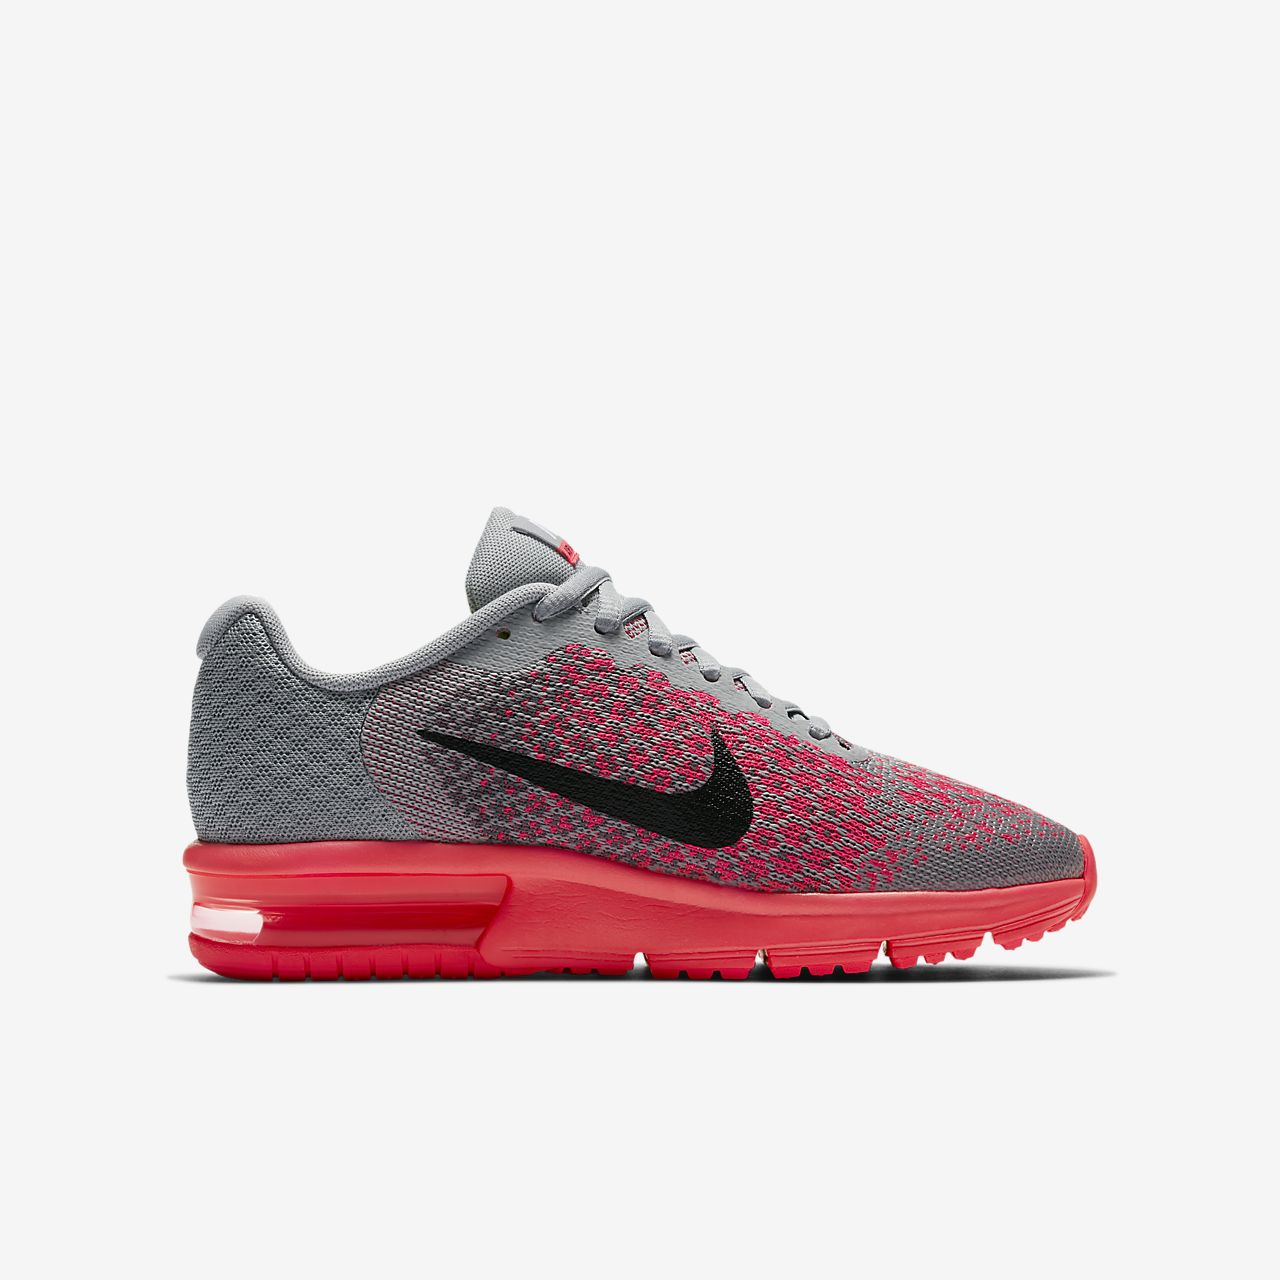 hot sale online 0bdcd cf025 ... Nike Air Max Sequent 2 Older Kids  Running Shoe